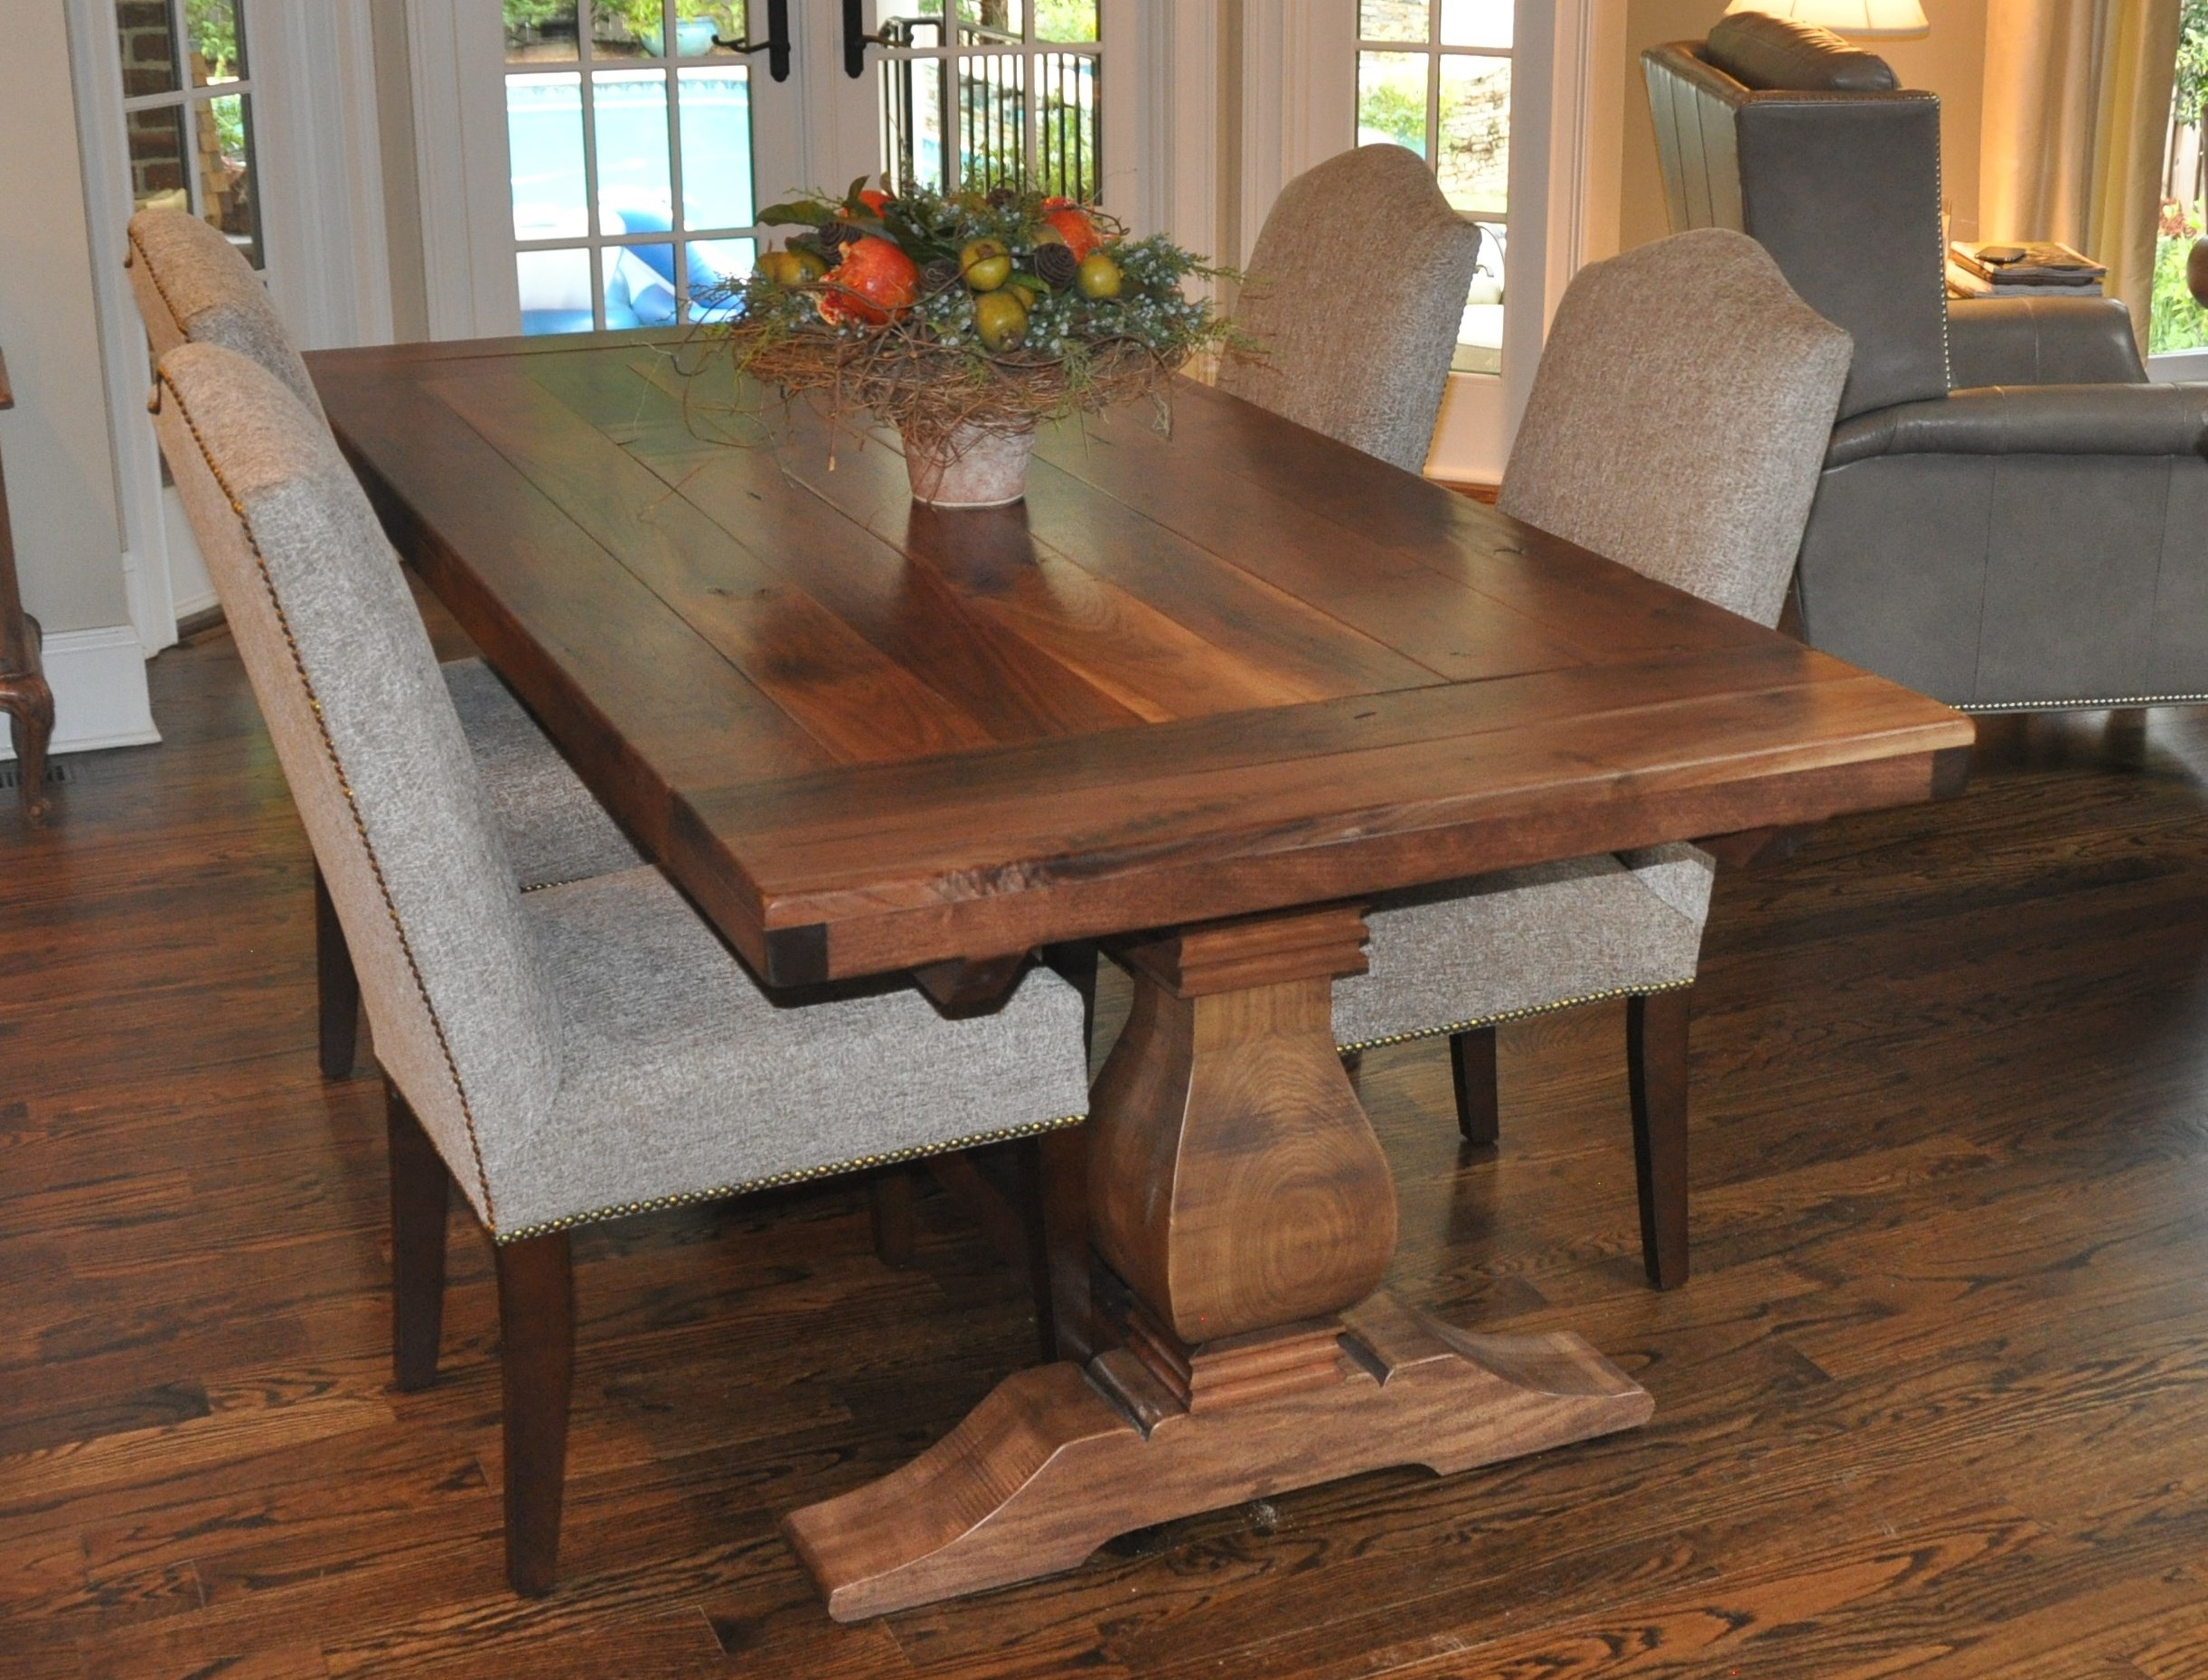 Rustic Weston Trestle Farmhouse Table